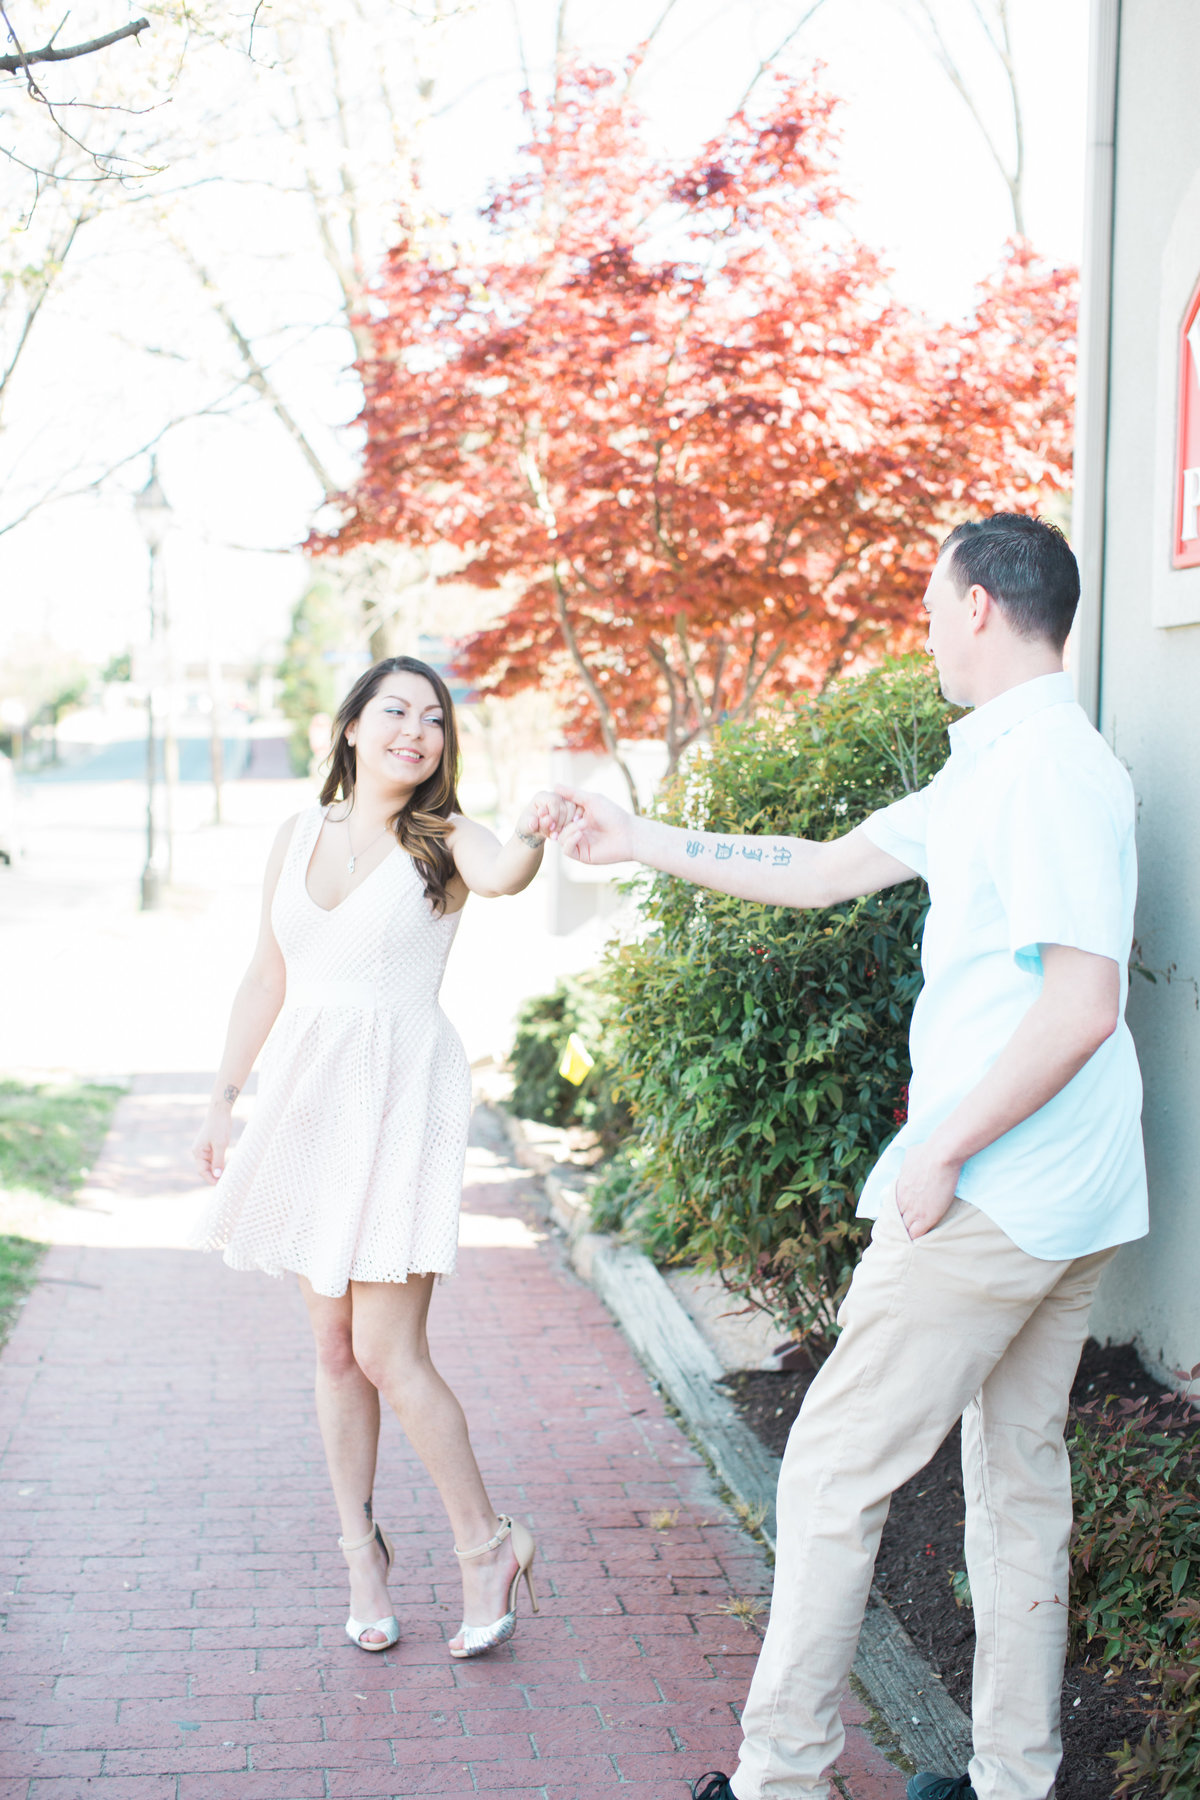 Bri & Mylen Engagement Session - Downtown Fredericksburg Virginia - Virginia Engagement and Wedding Photographer - 1-46